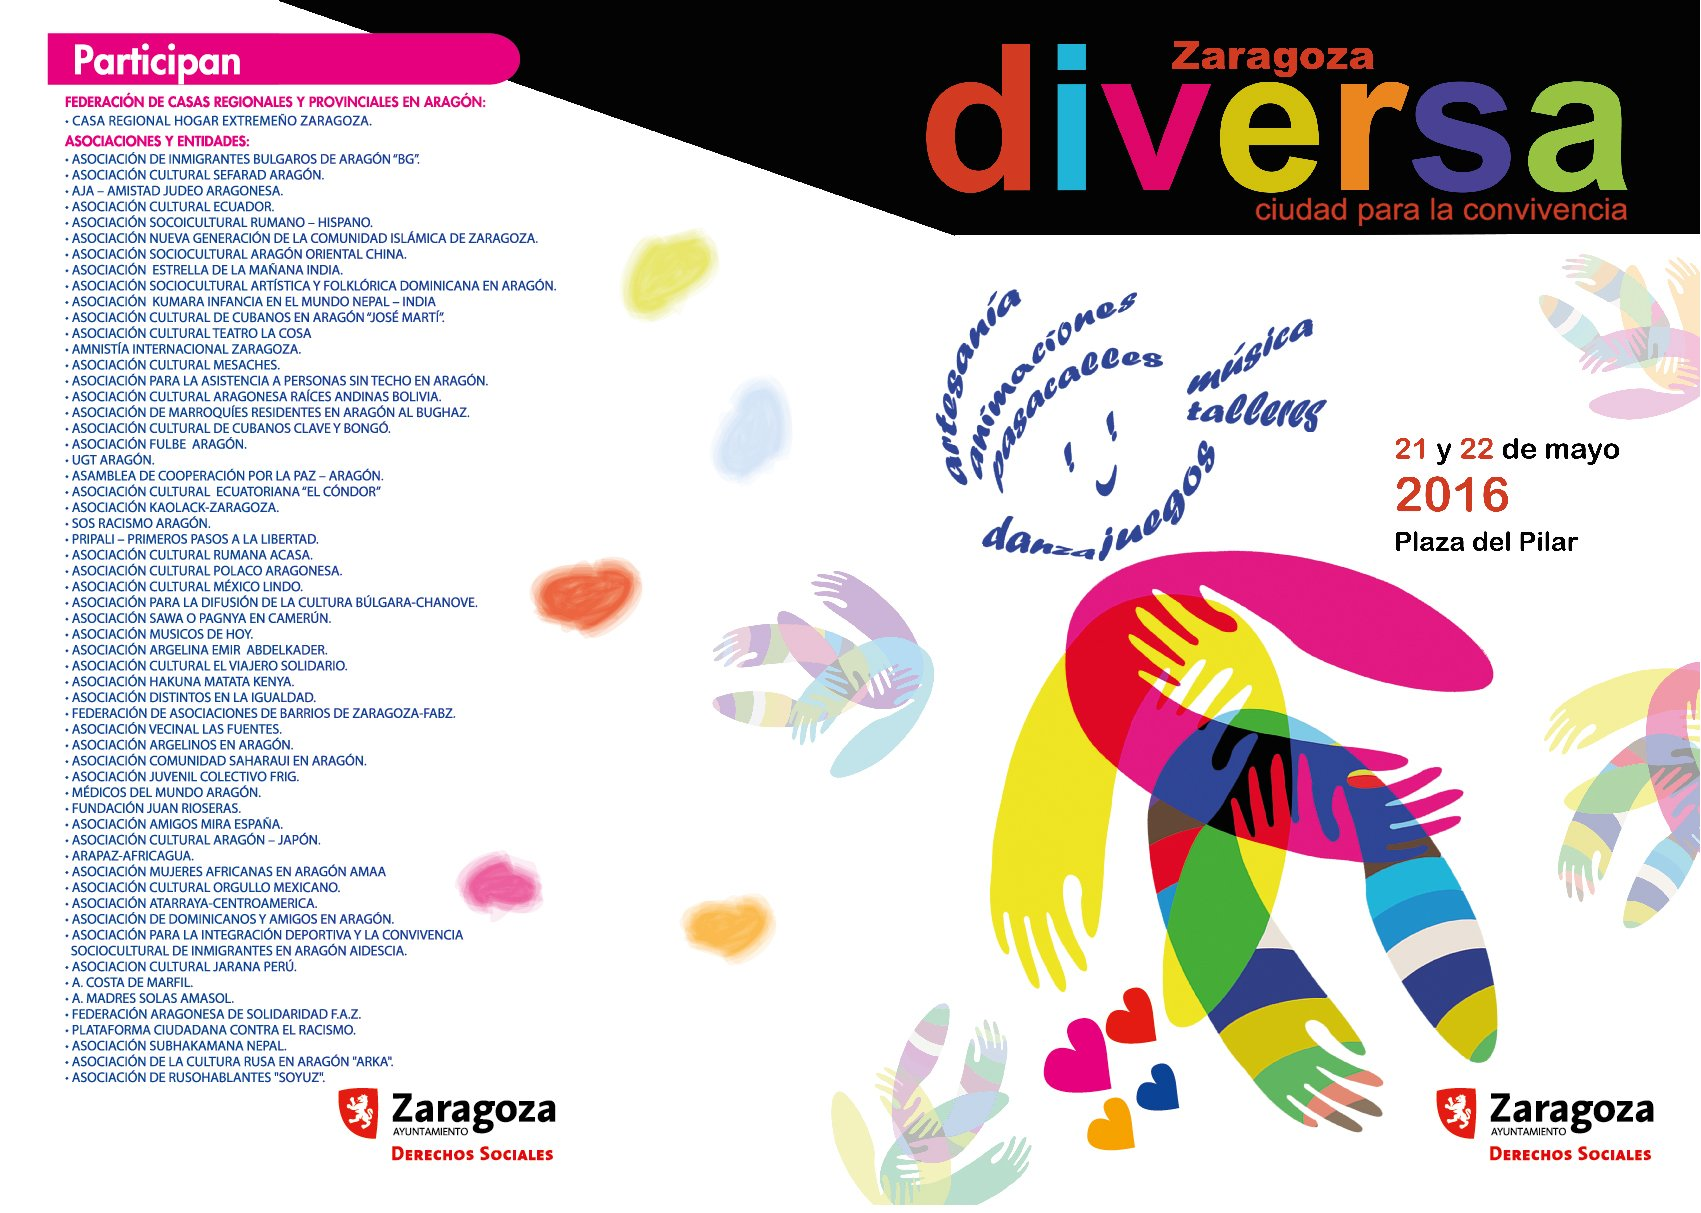 folleto 2016 Zaragoza-Diversa 01.jpeg